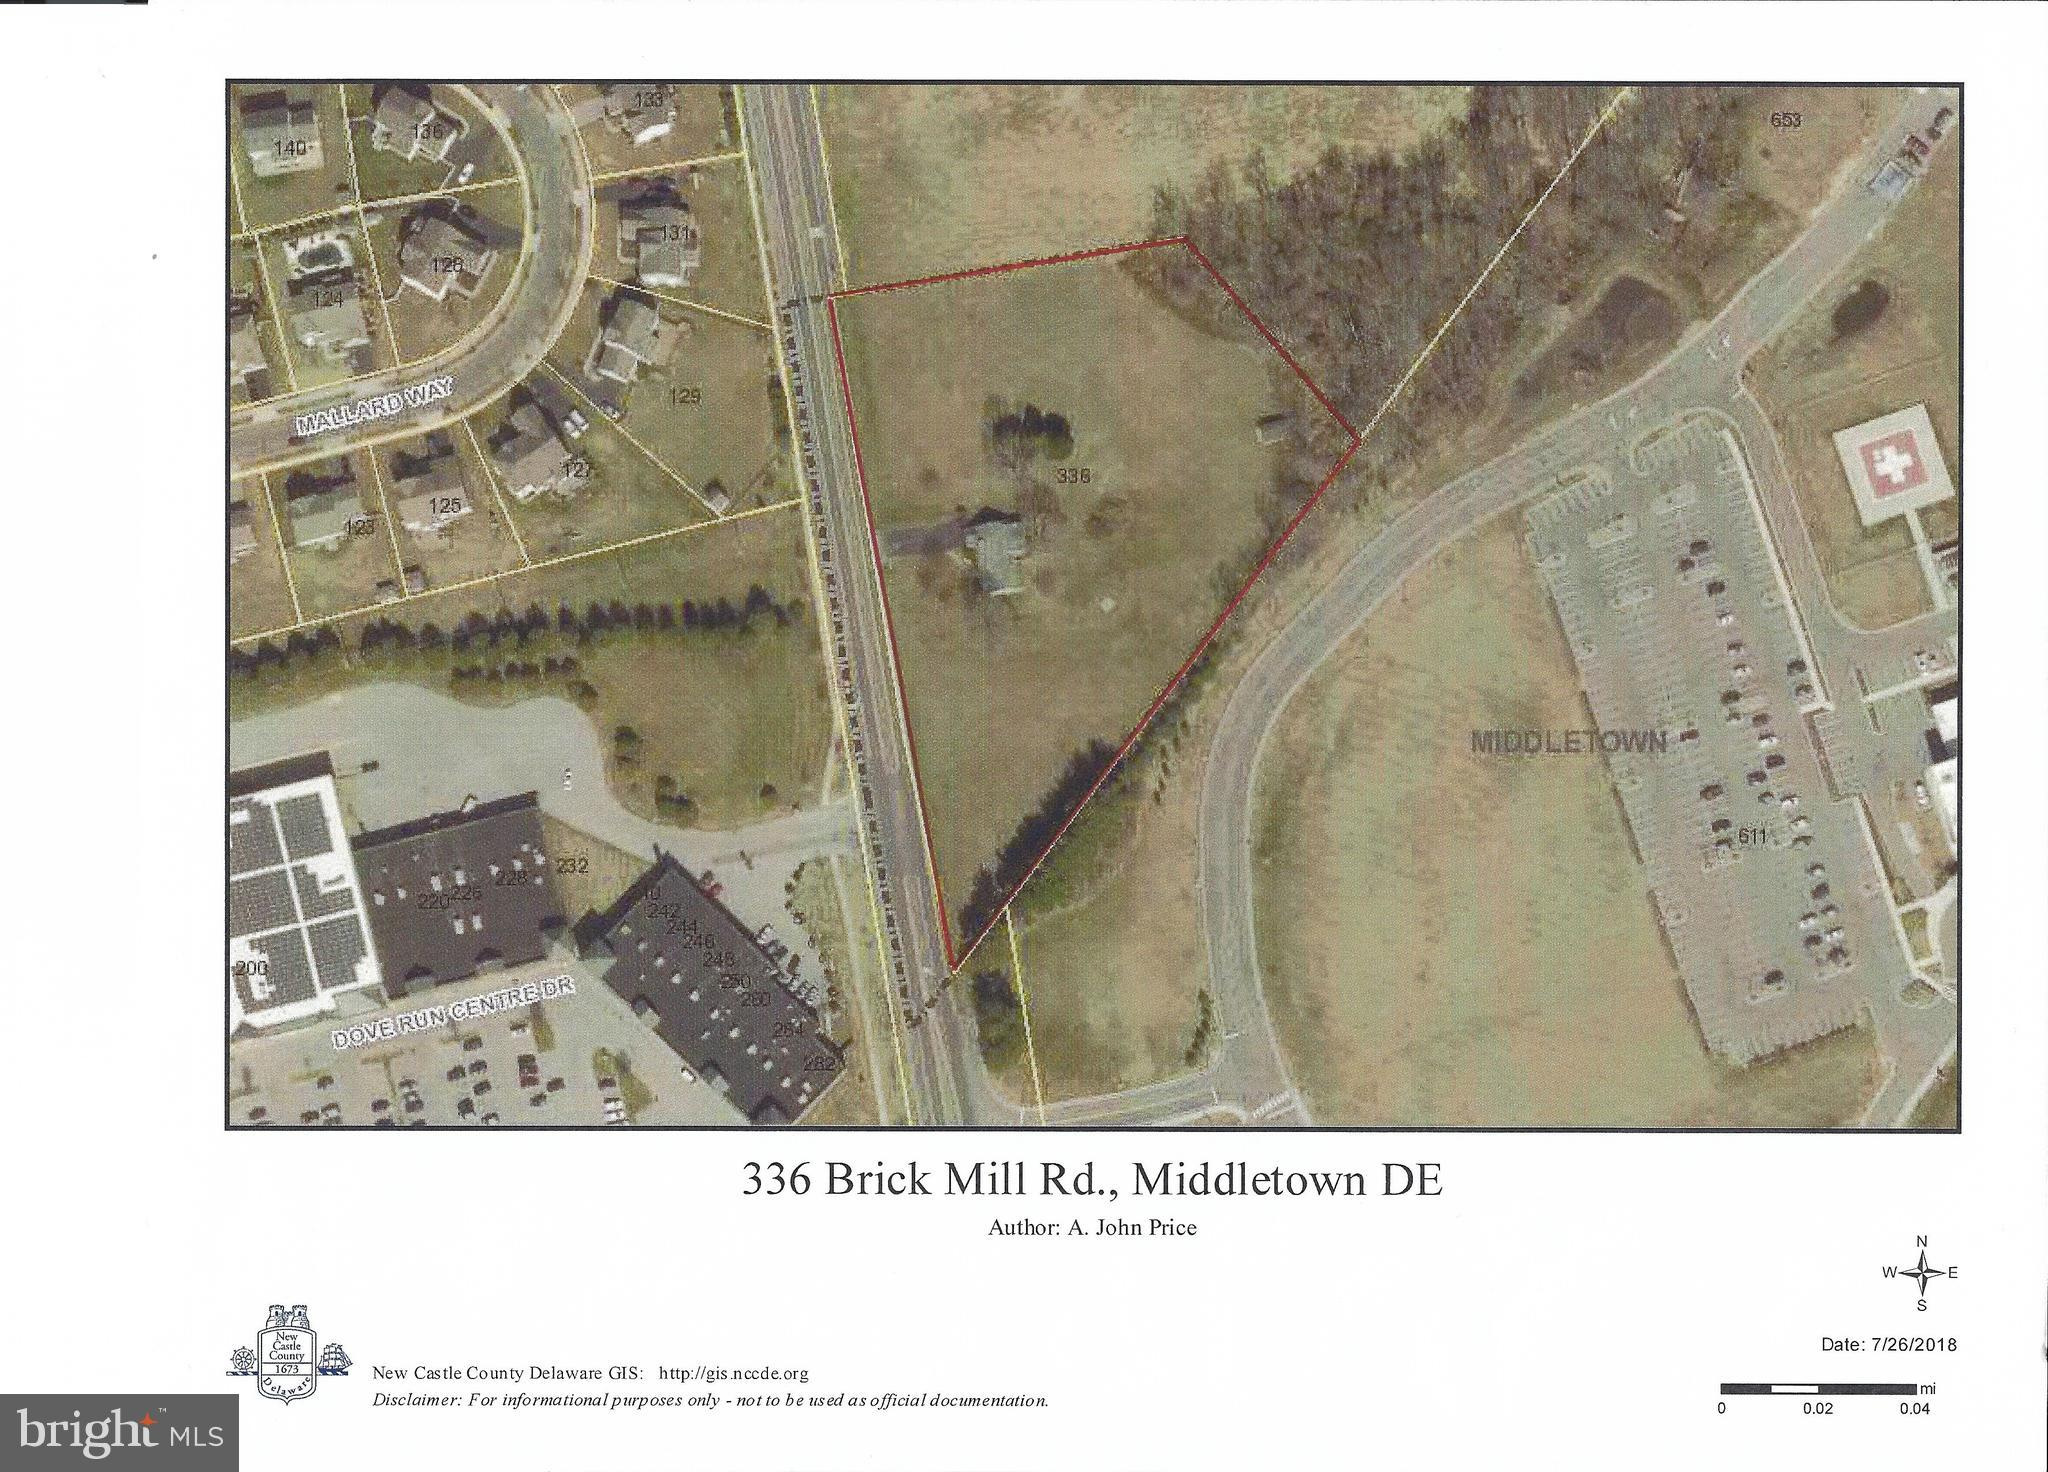 3.52+/- acres situated on the Easterly side of Brick Mill Rd.  Adjacent to the Christina Hospital Medical Complex and across from Dove Run Center, this property lends itself to multiple uses.  A must-see property for the enterprising developer.